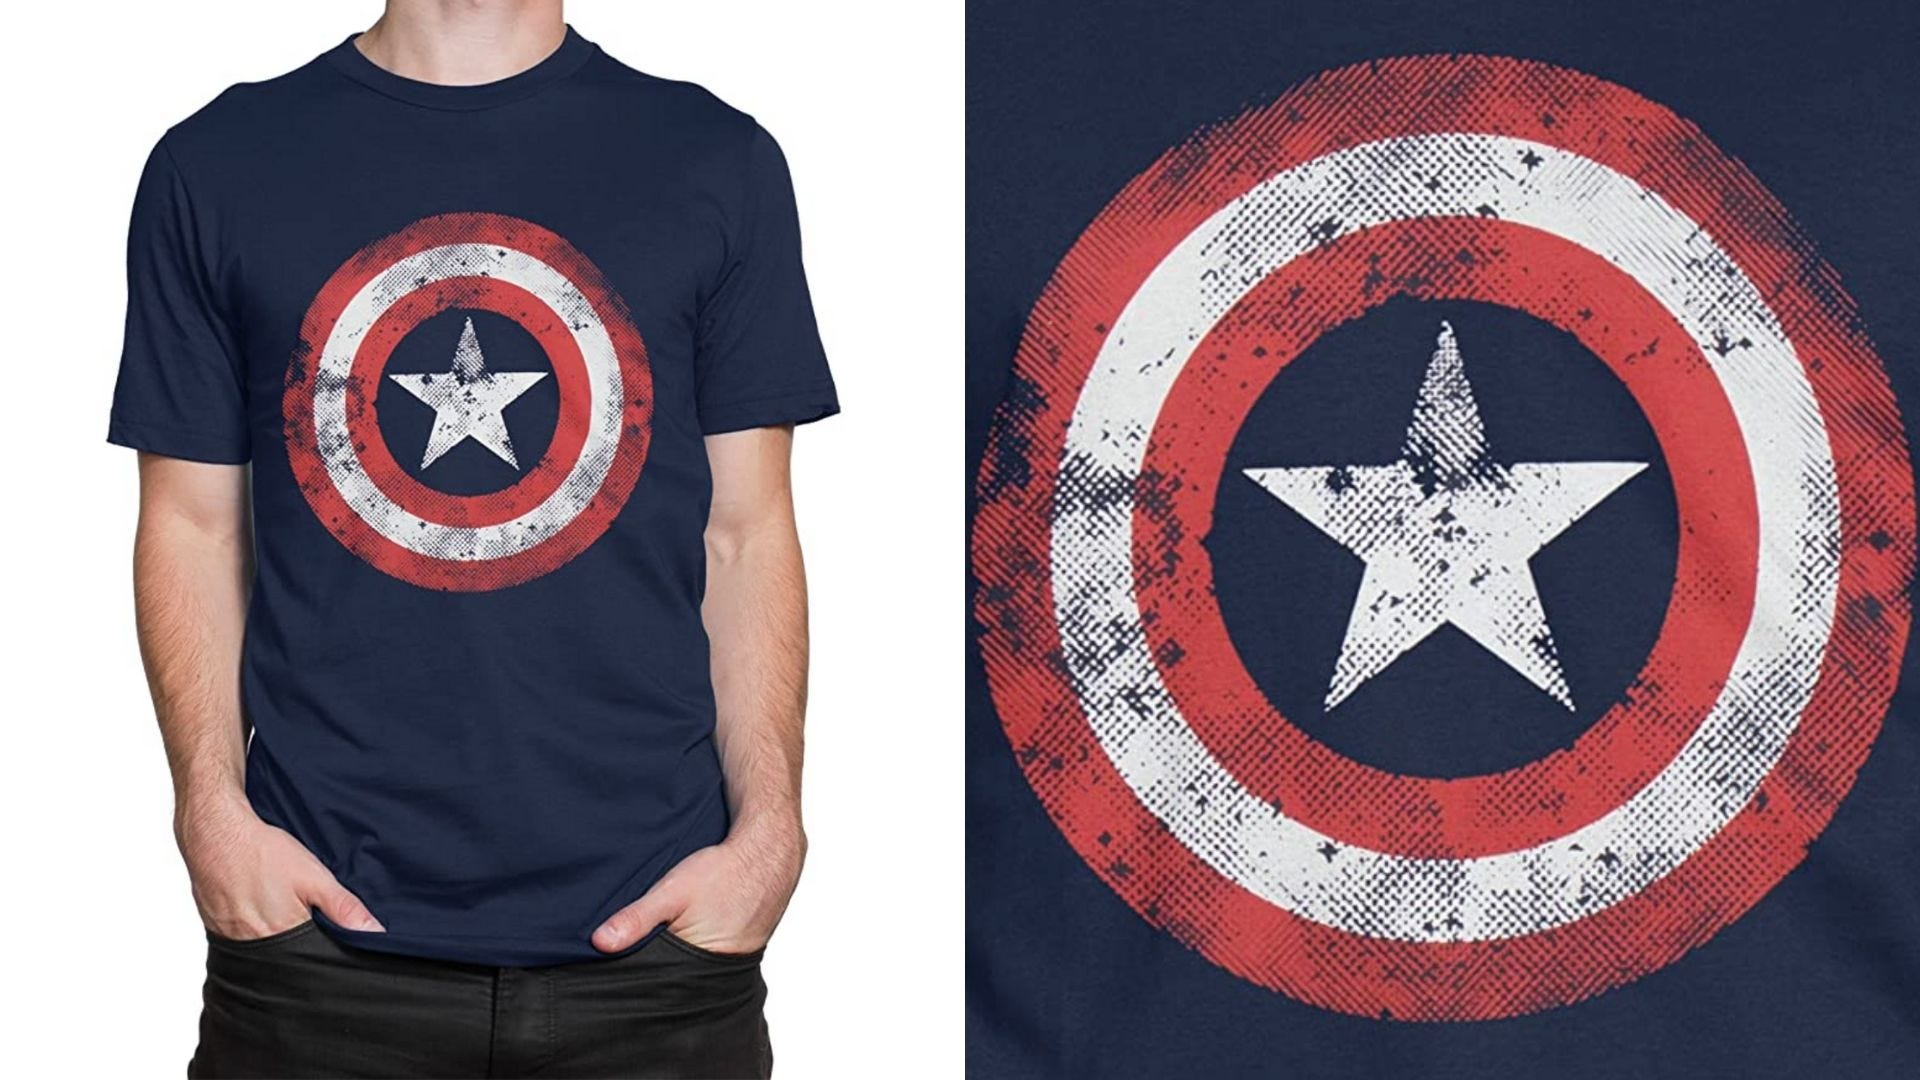 A man wears a t-shirt with Captain America's shield on the front